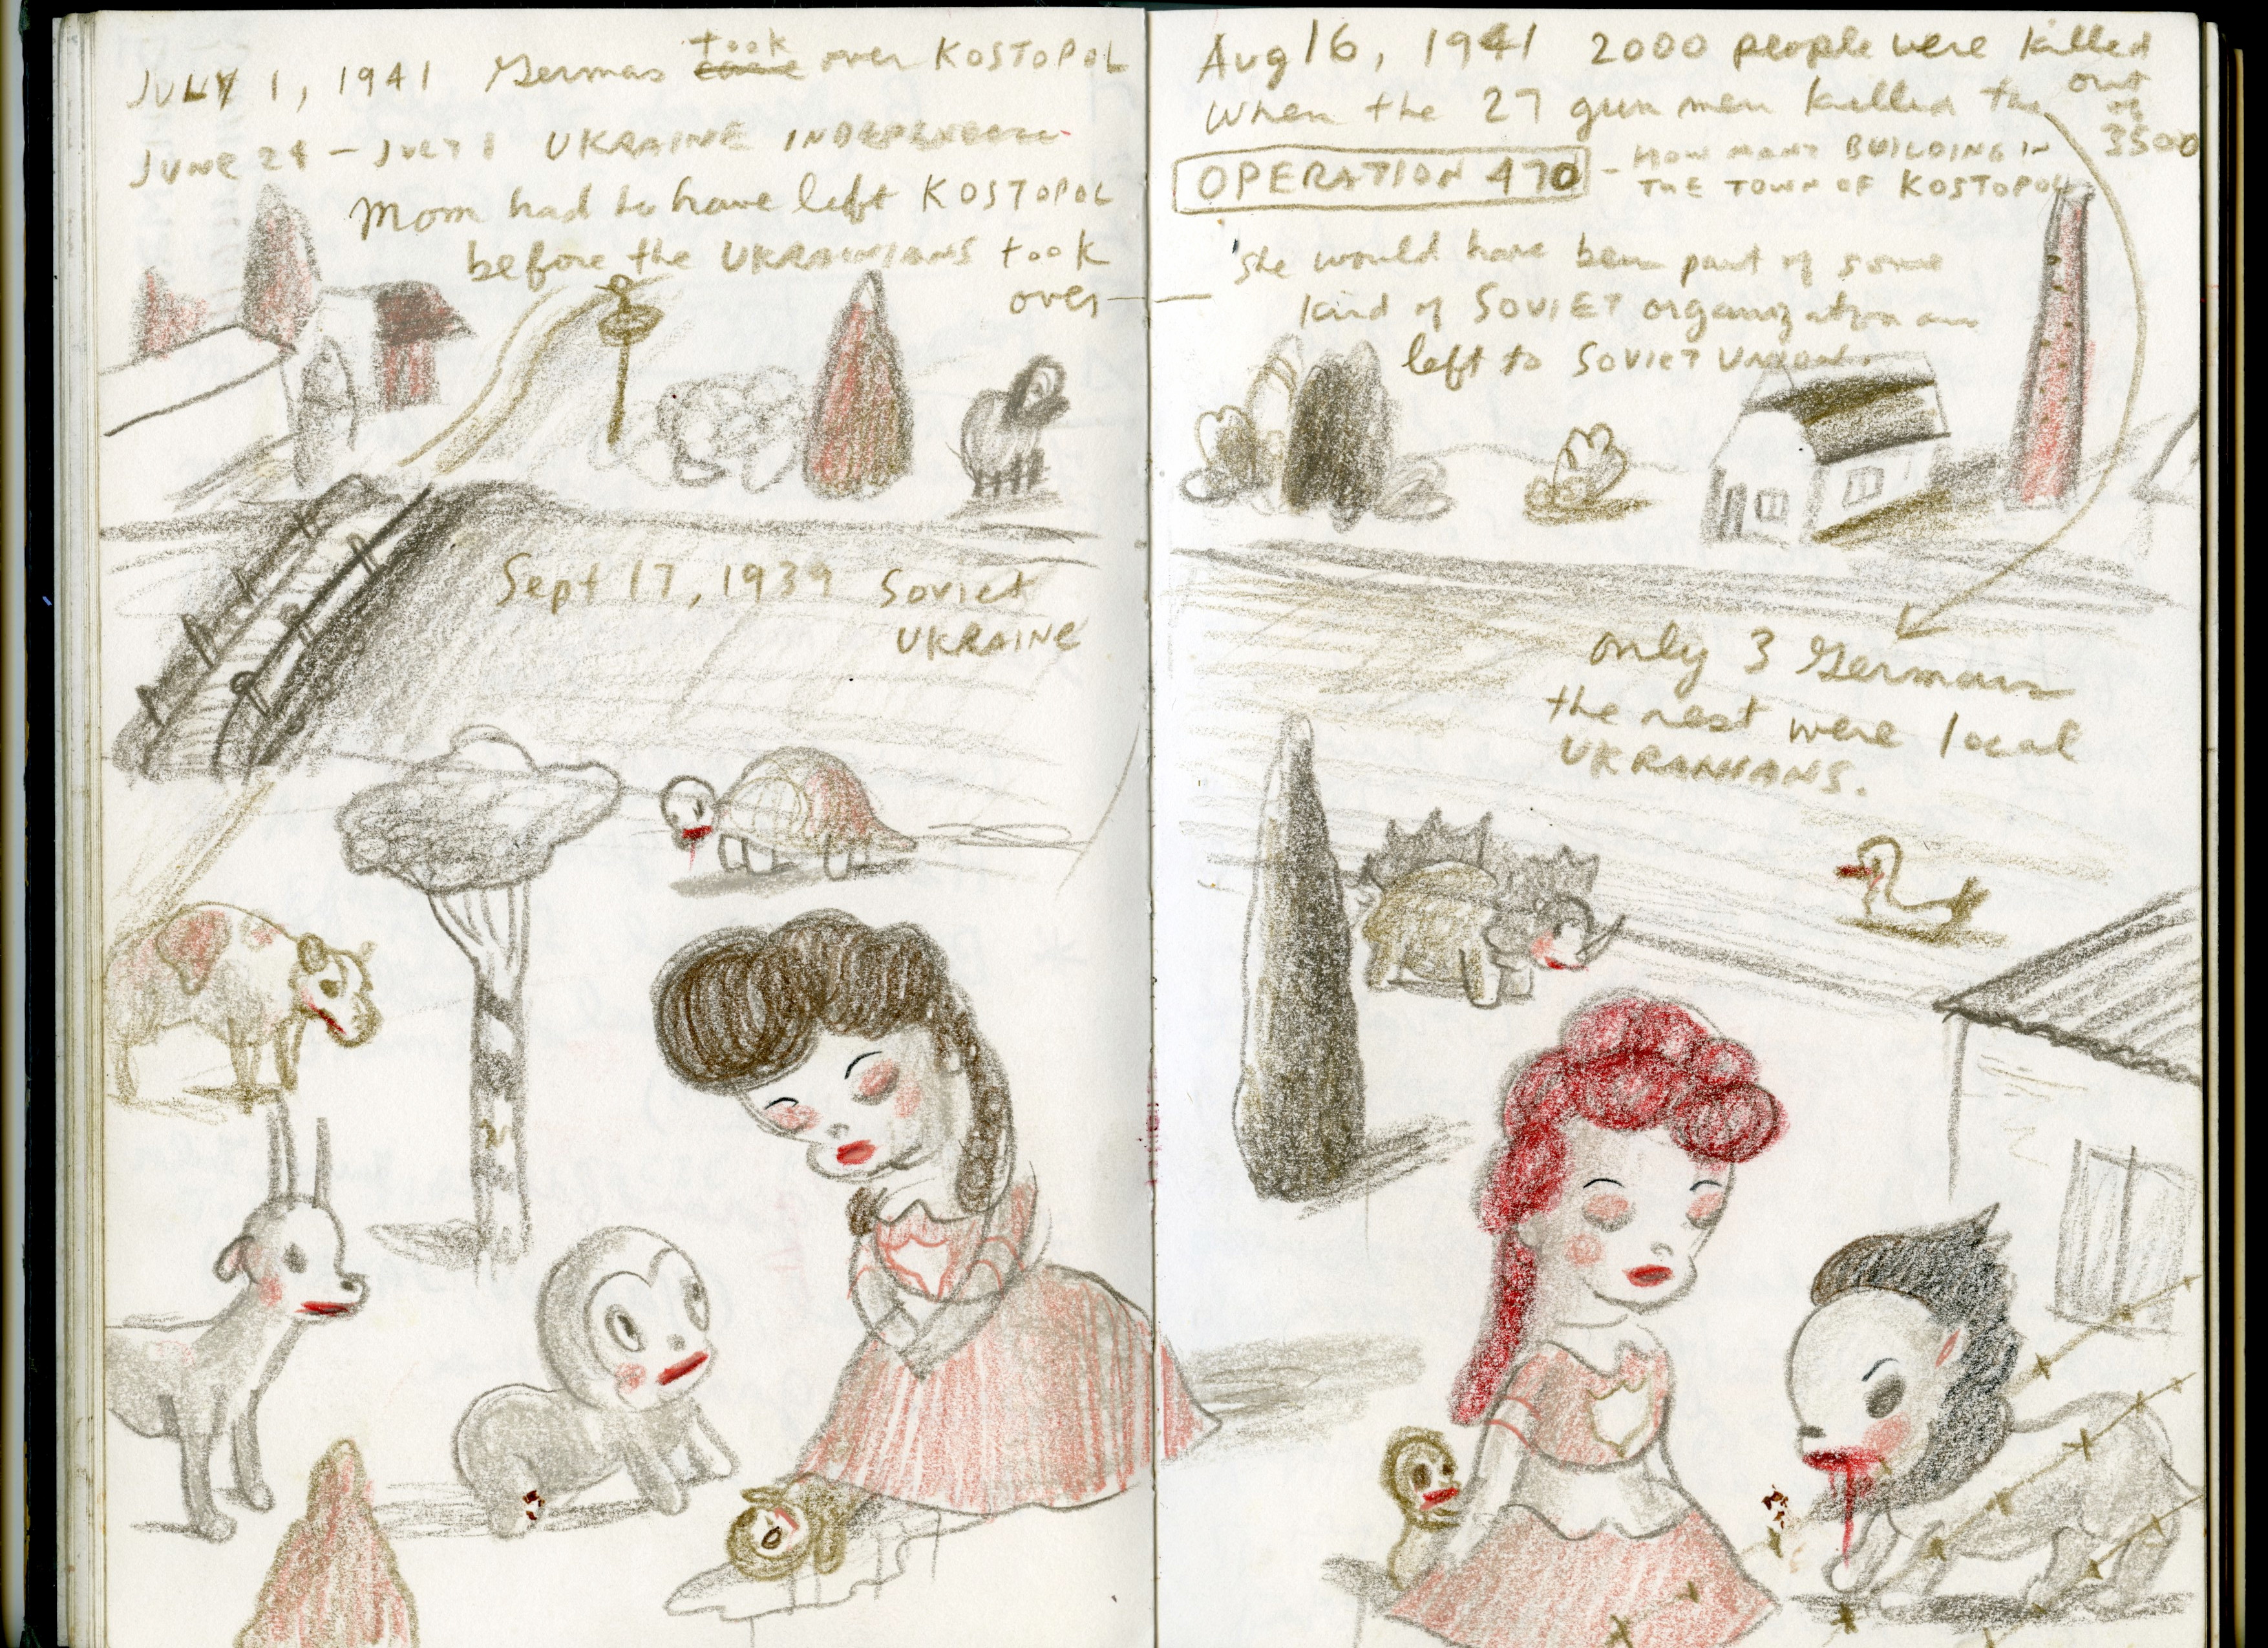 Image: A picture from a sketchbook showcasing bizzare artwork about Soviet Ukraine.